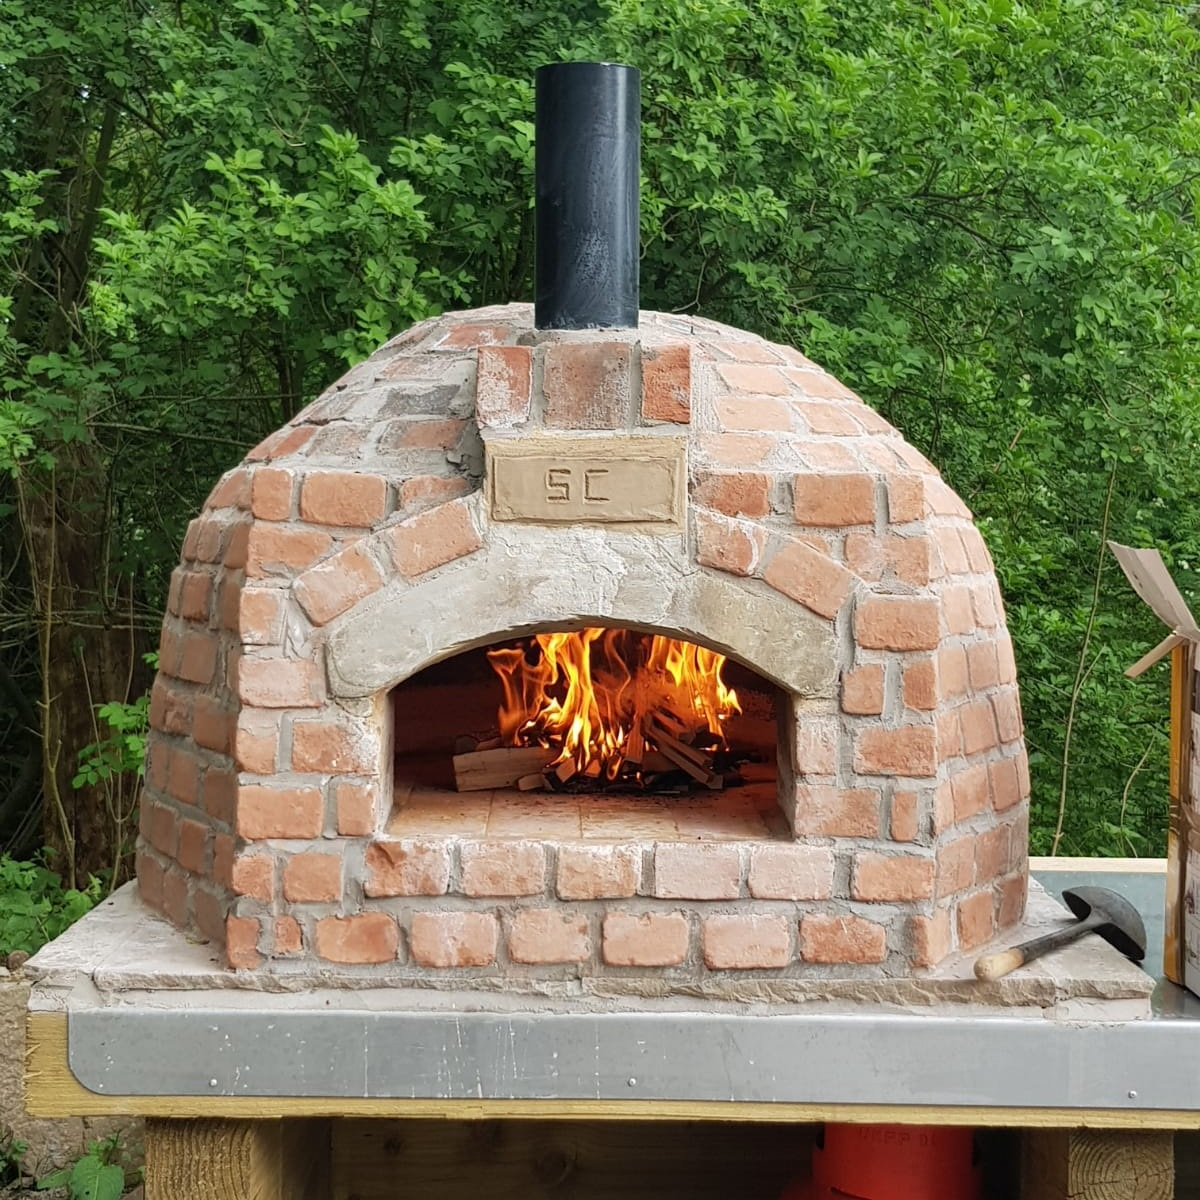 Pizza+Oven+at+Spring+Cottage+Cafe+in+the+Lancashire+Countryside